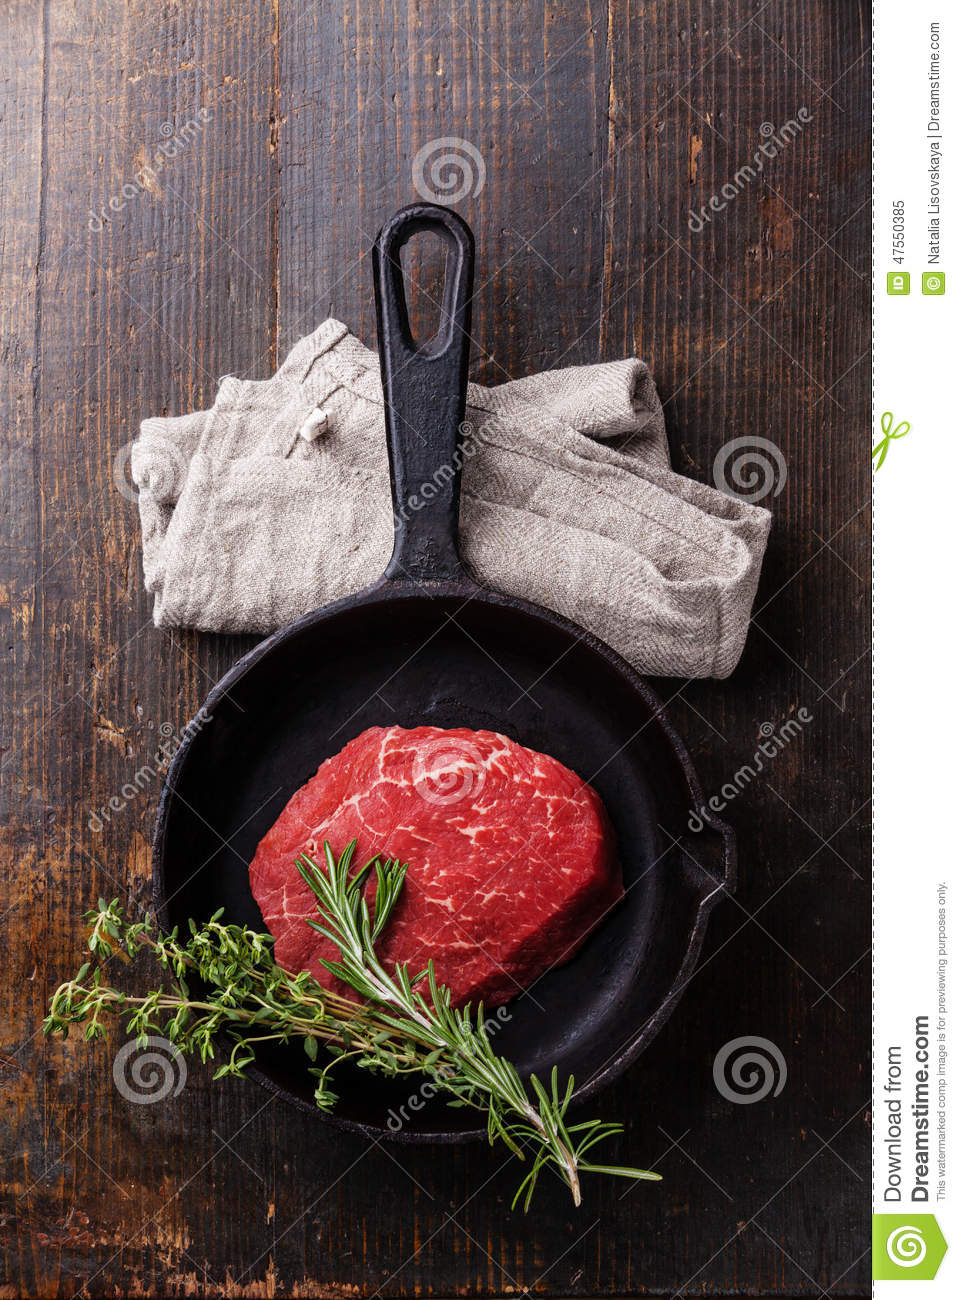 how to cook sirloin steak on griddle pan